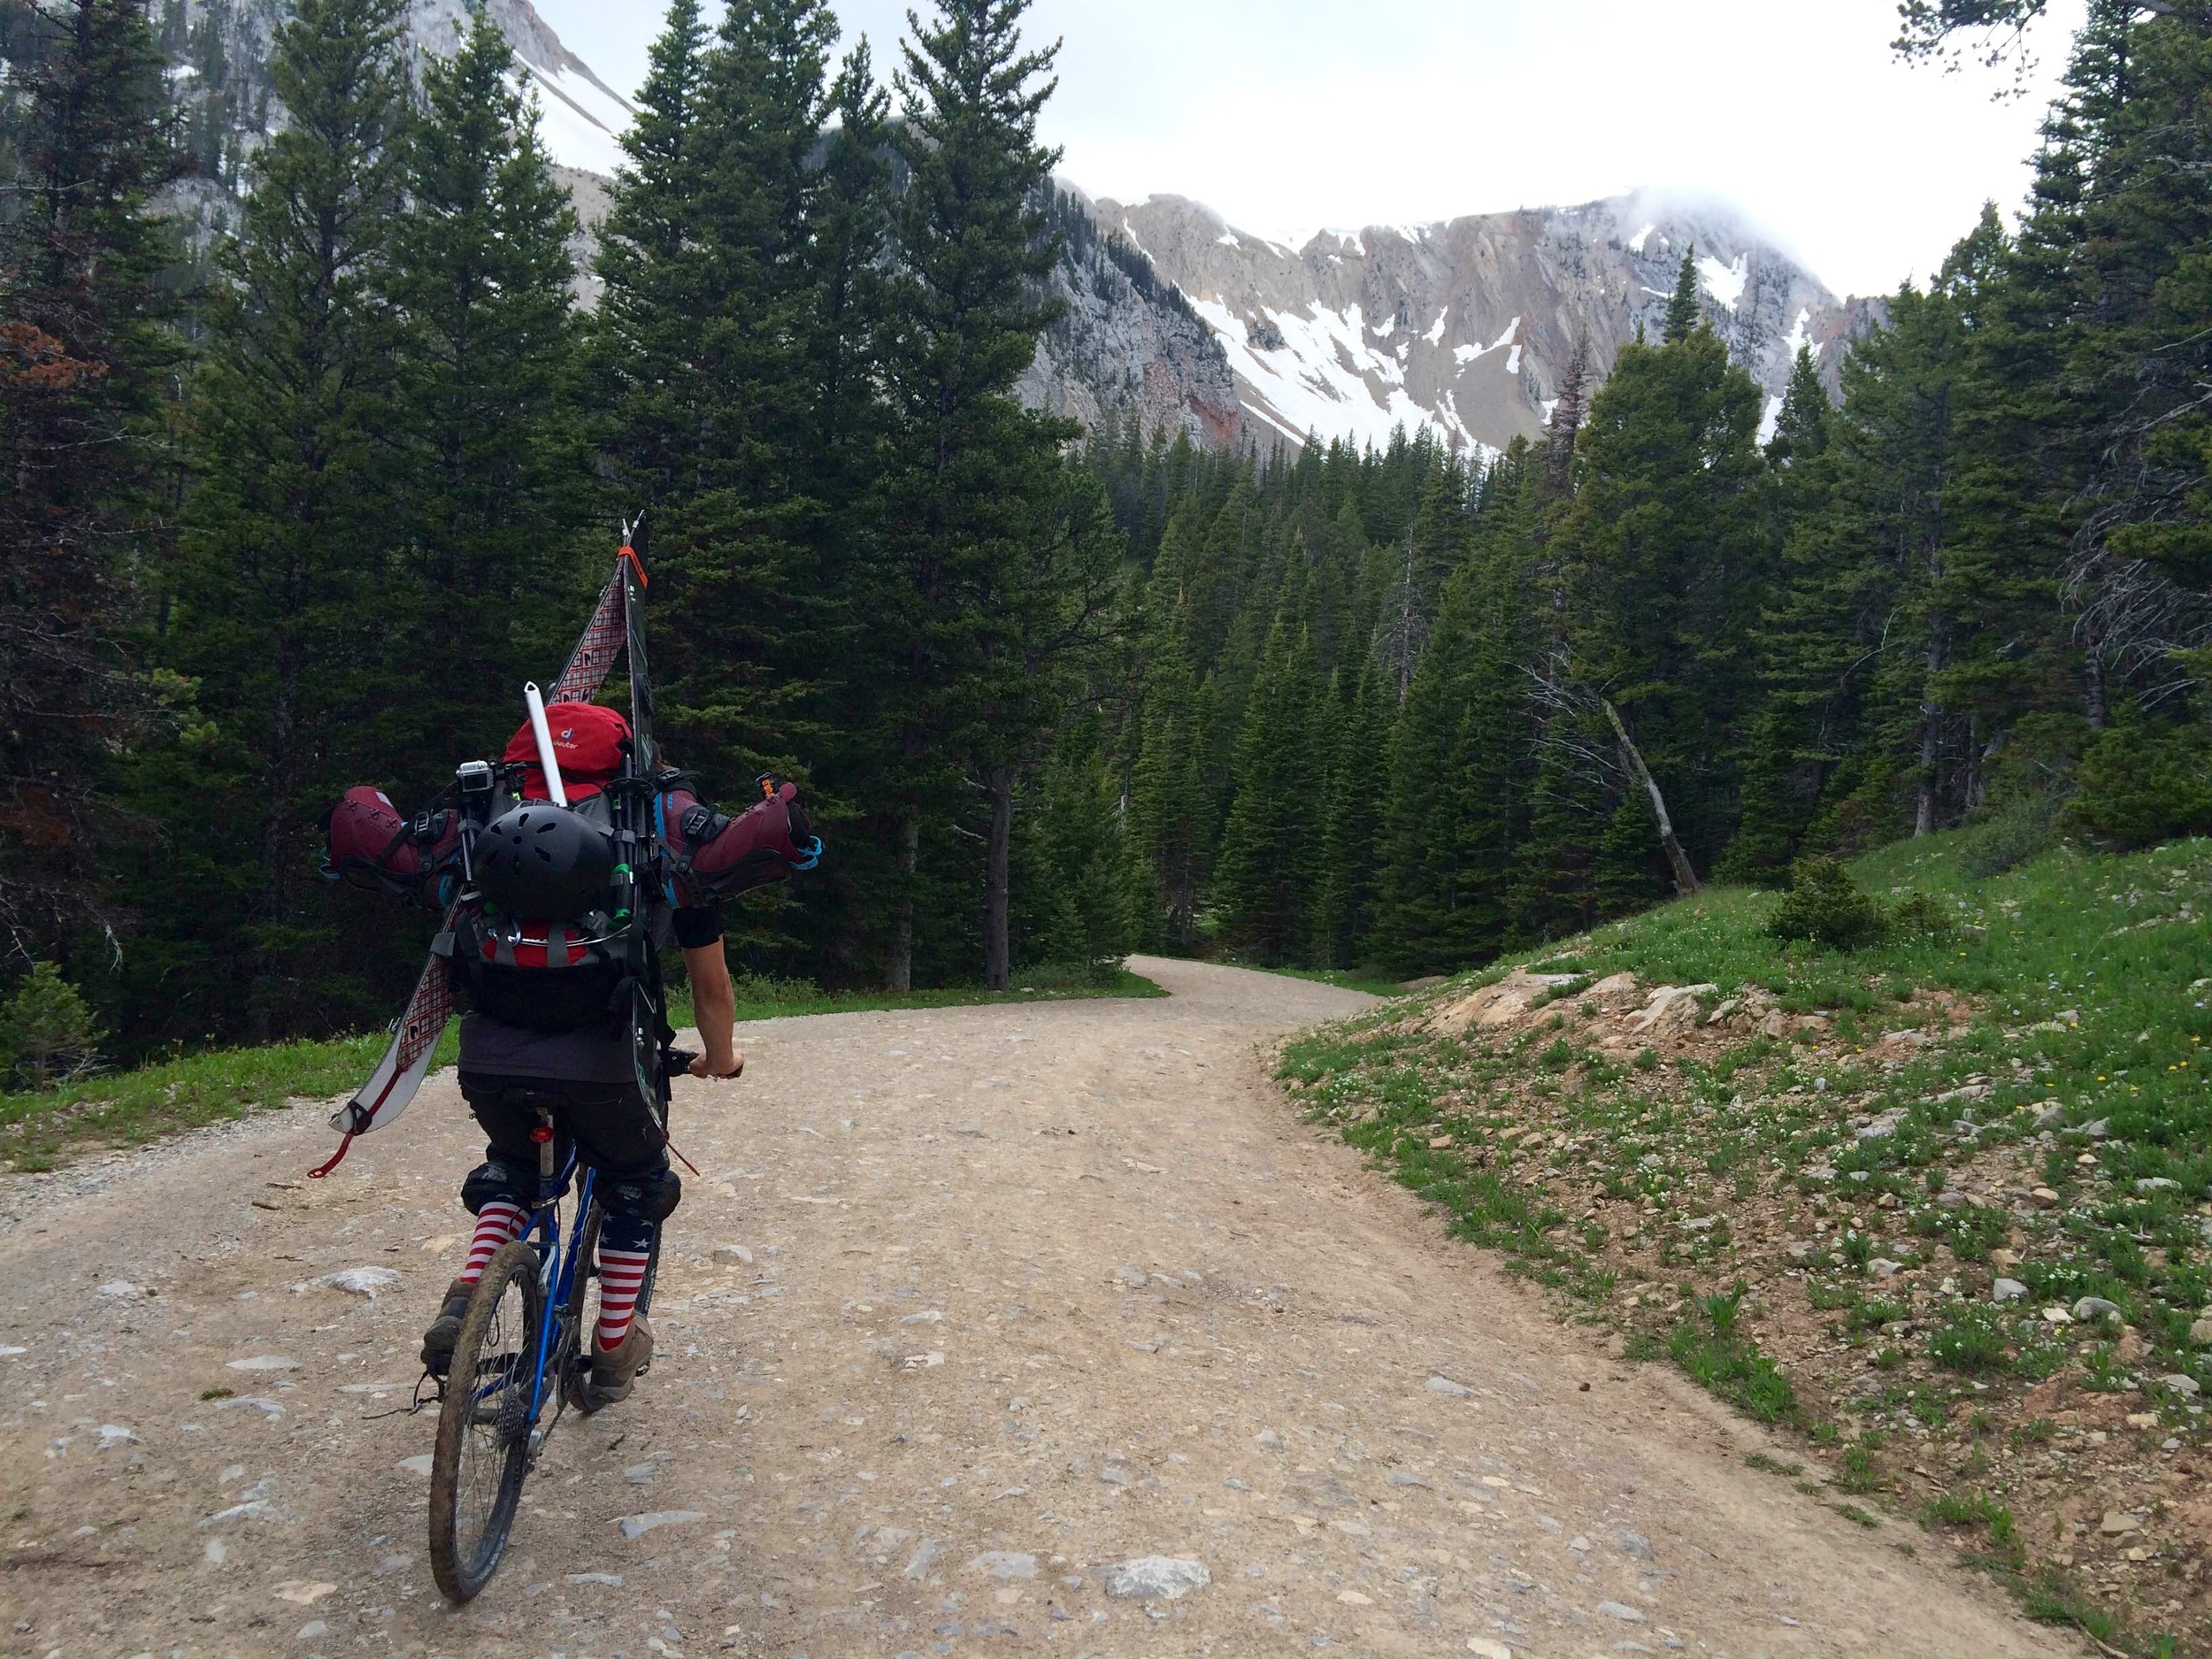 Reese approaching Fairy Lake on his stead.